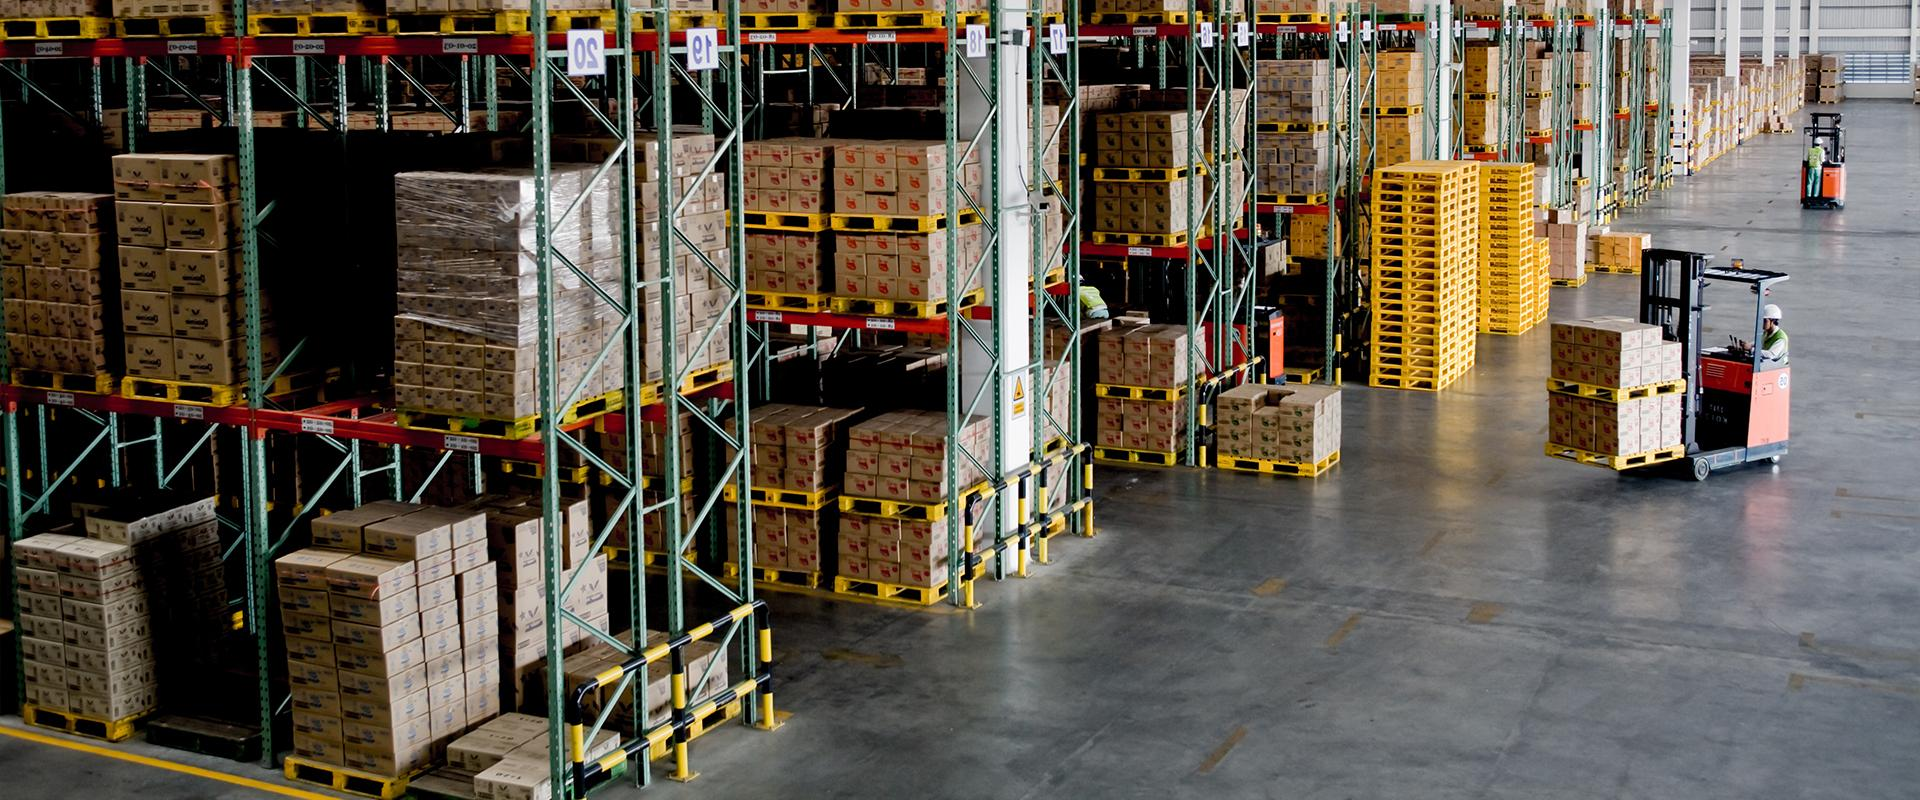 interior of commercial warehouse